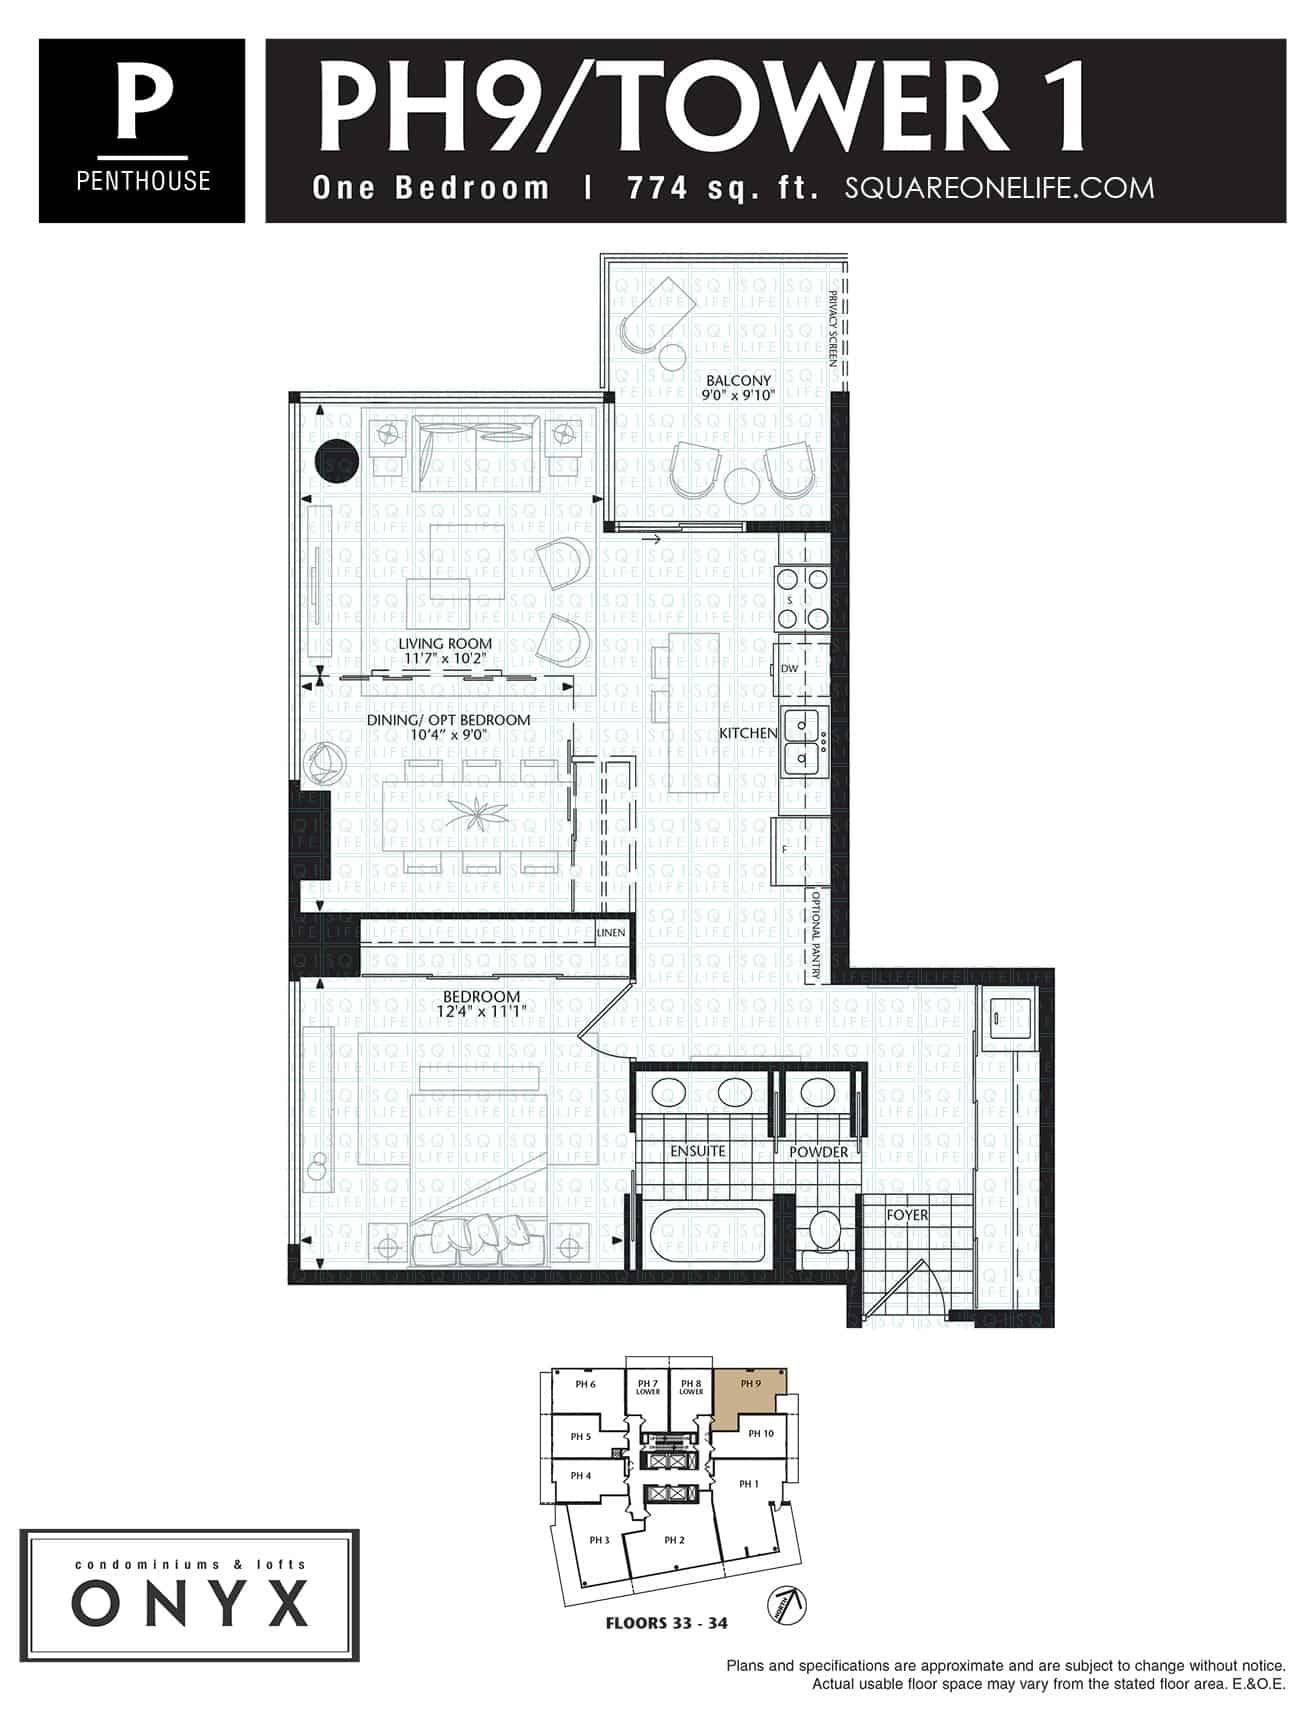 223-Webb-Dr-Onyx-Condo-Floorplan-PH9-1-Bed onyx condo Onyx Condo 223 Webb Dr Onyx Condo Floorplan PH9 1 Bed